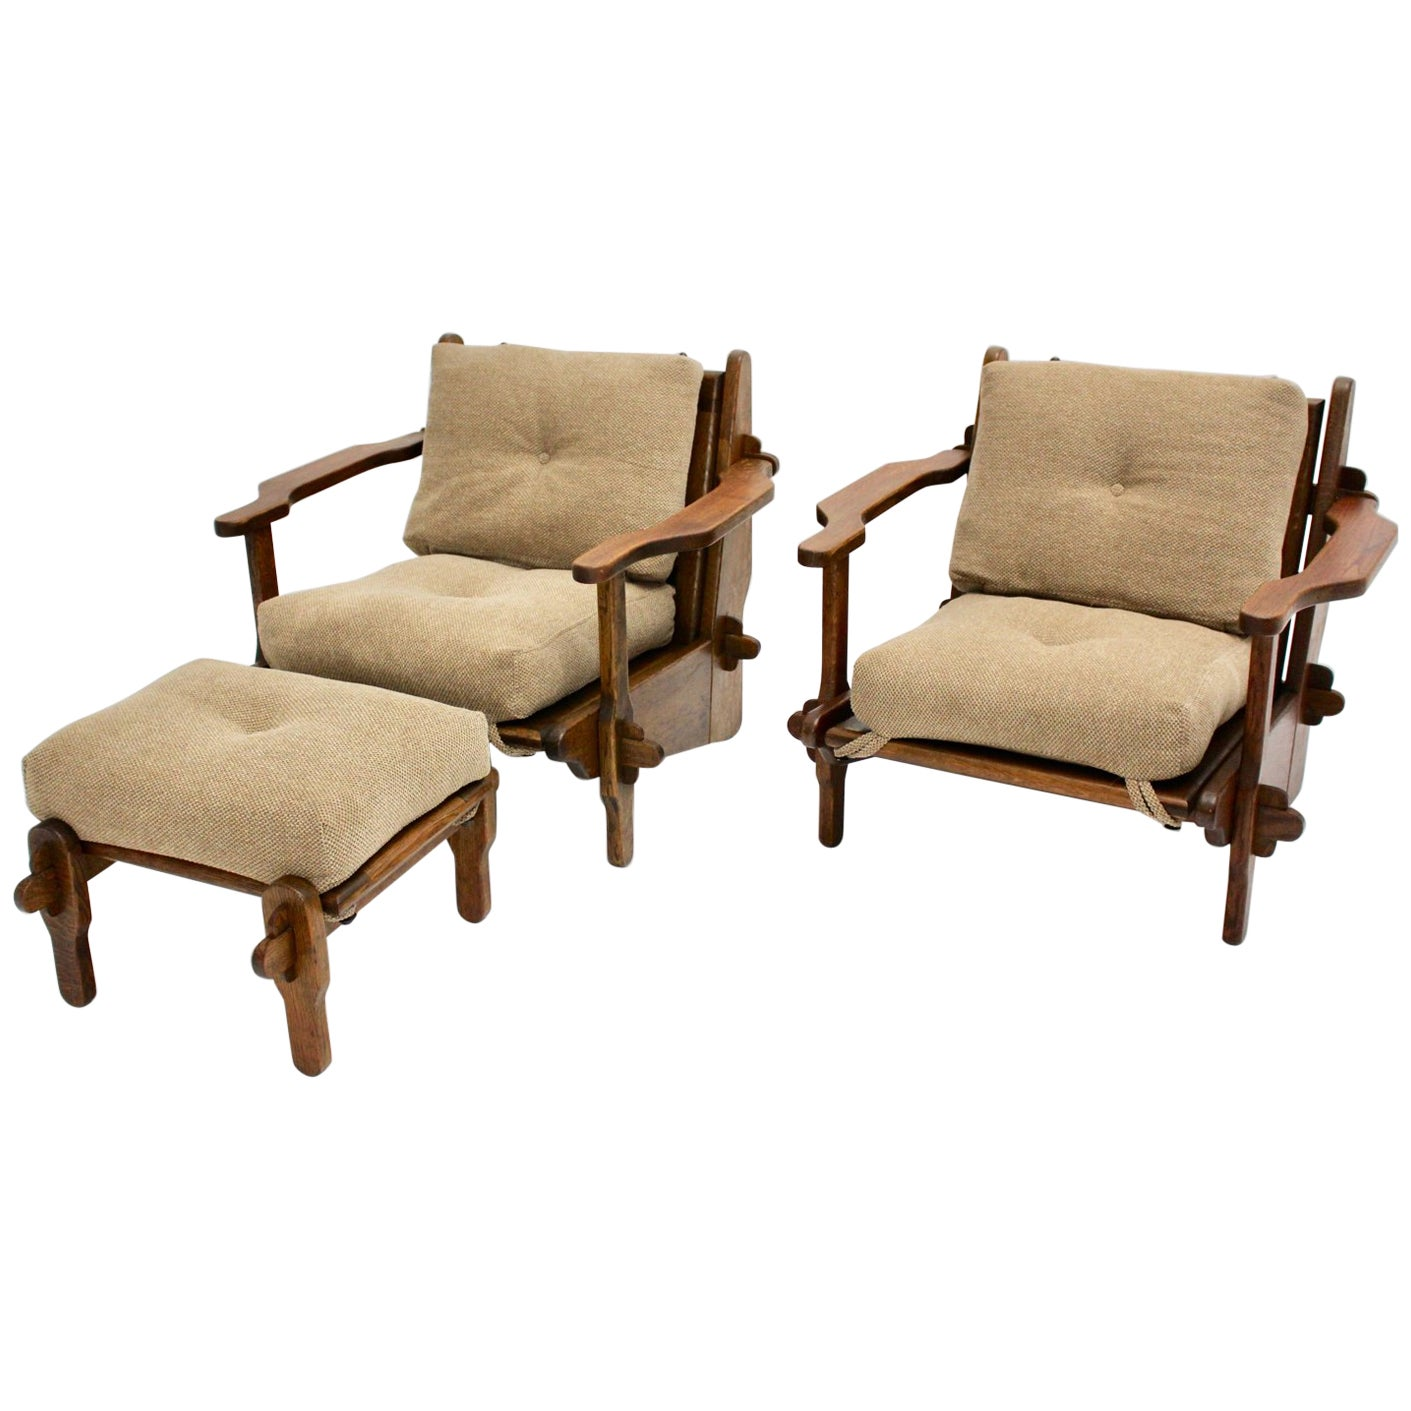 Mid Century Modern Vintage Oak Lounge Chairs with Ottoman, France, 1950s